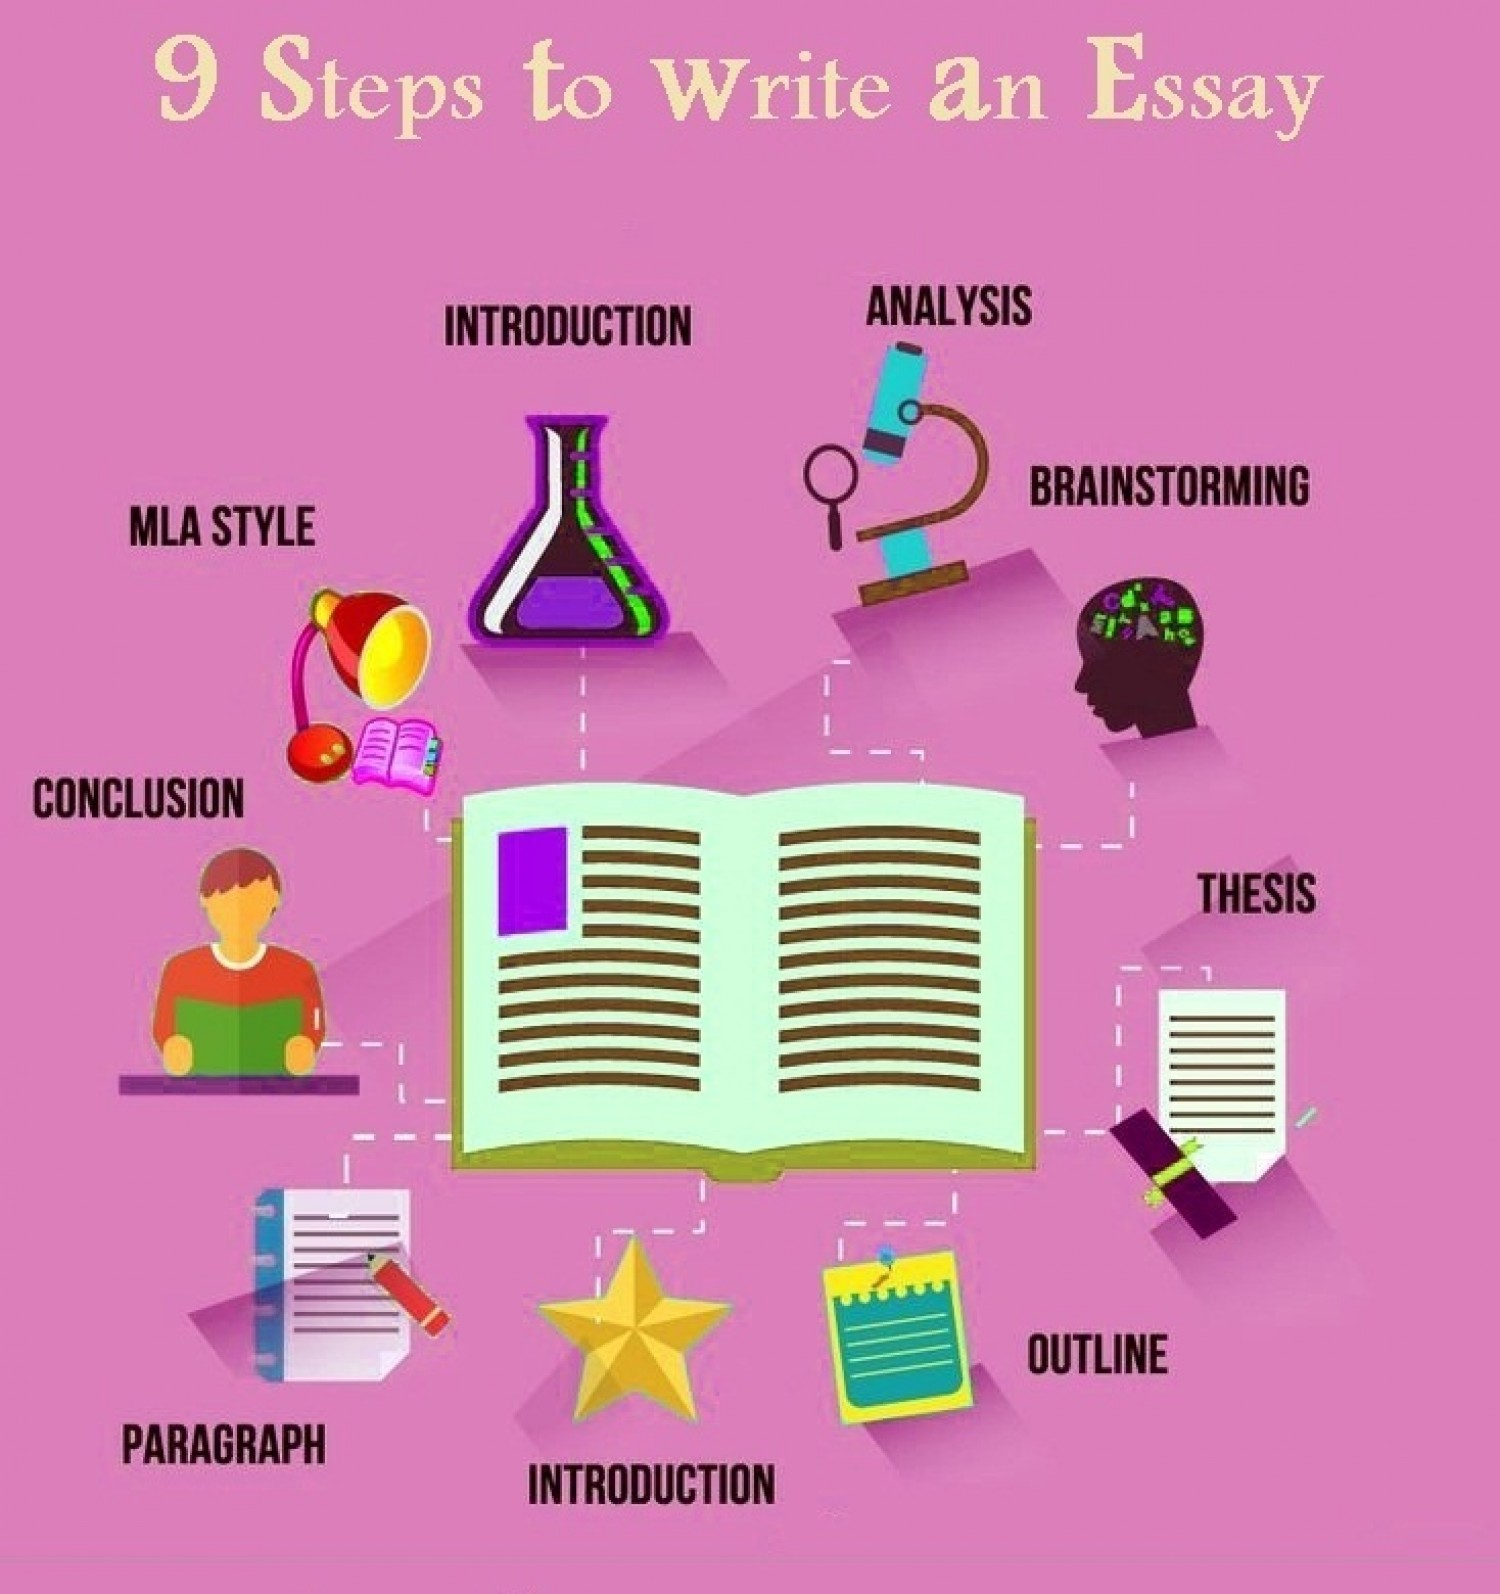 005 Essayxample Steps To Write Good Research Paper Help Kfessayutwk Anssay 54ffdd822be4basy Writing Paragraph Persuasive How In Five Pdf Argumentative Narrative Staggering An Essay Telugu Mla Format Full